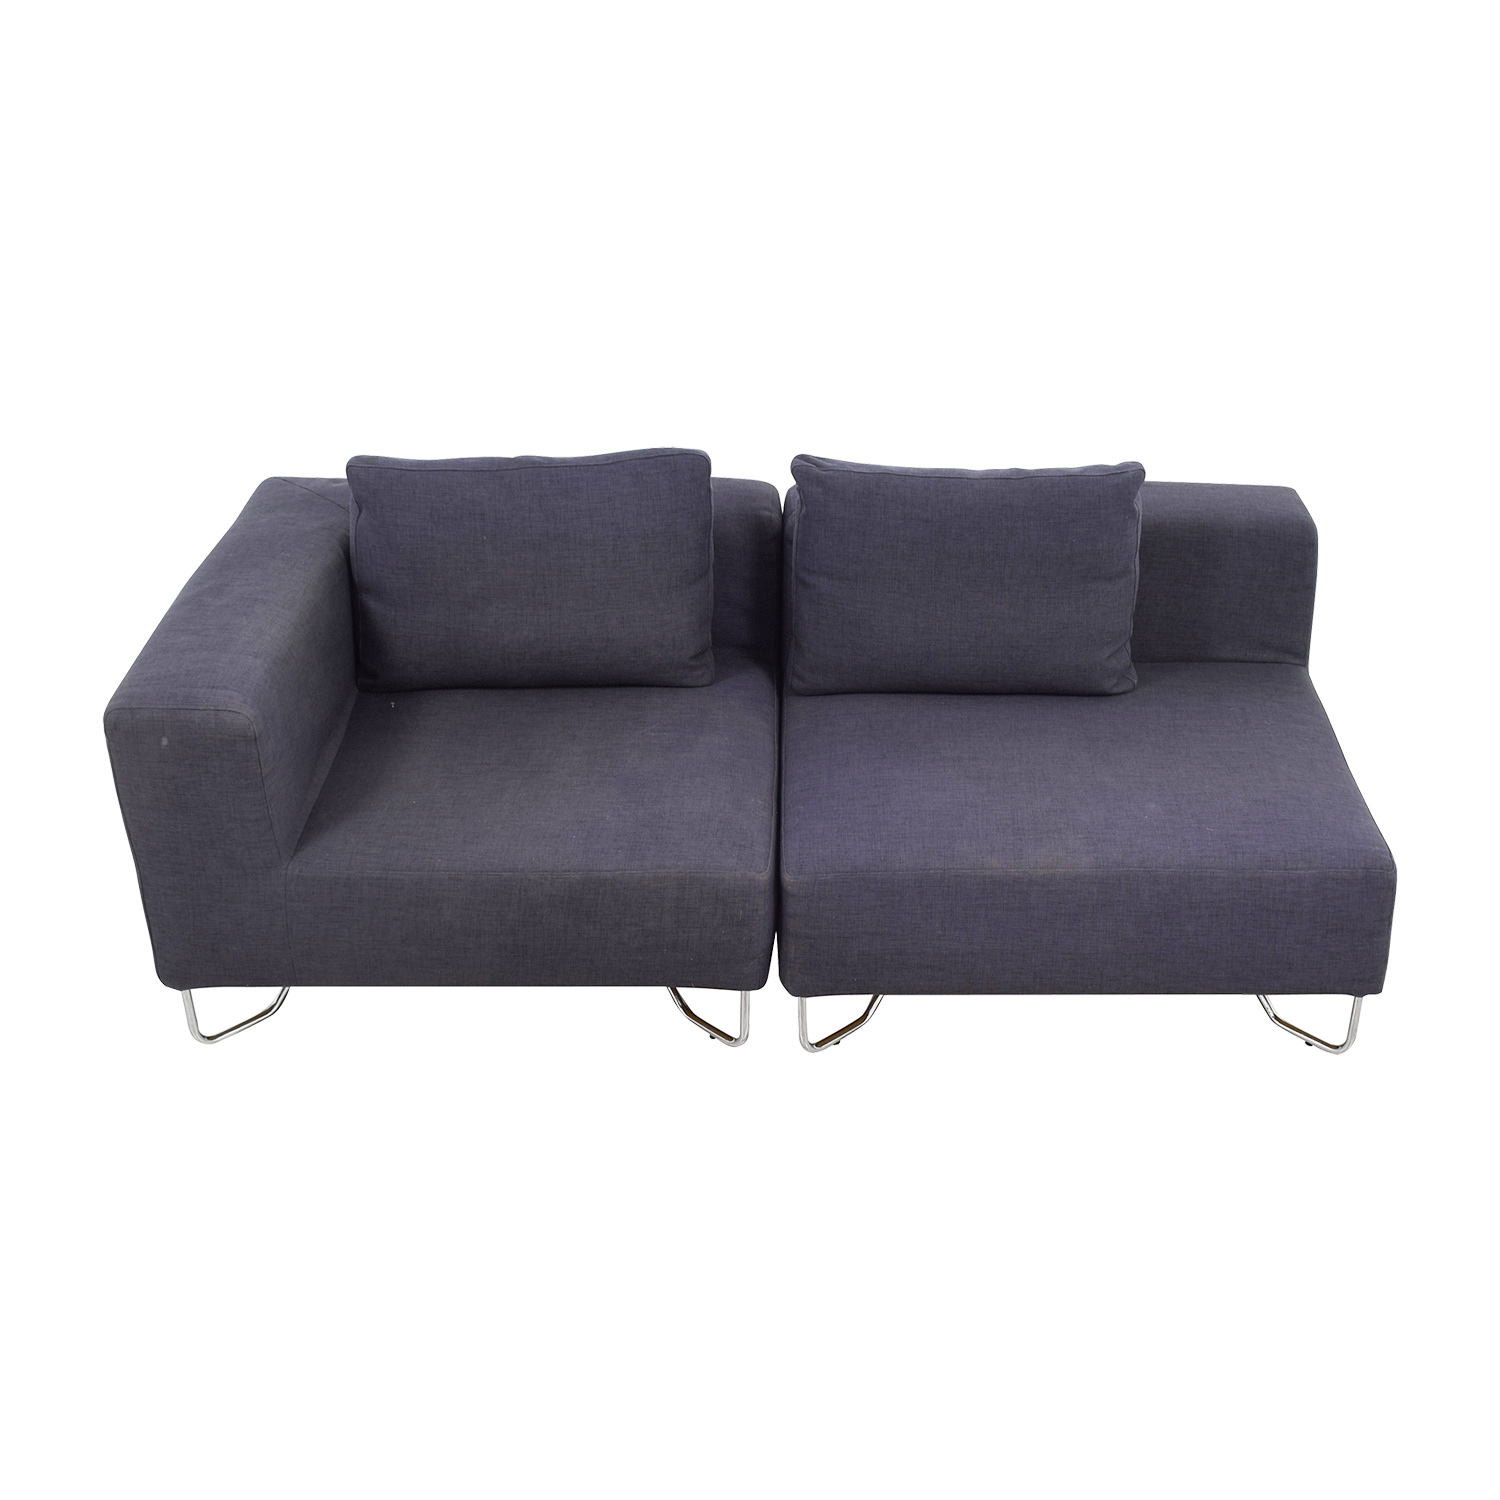 CB2 CB2 Two-Piece Navy Sofa nyc